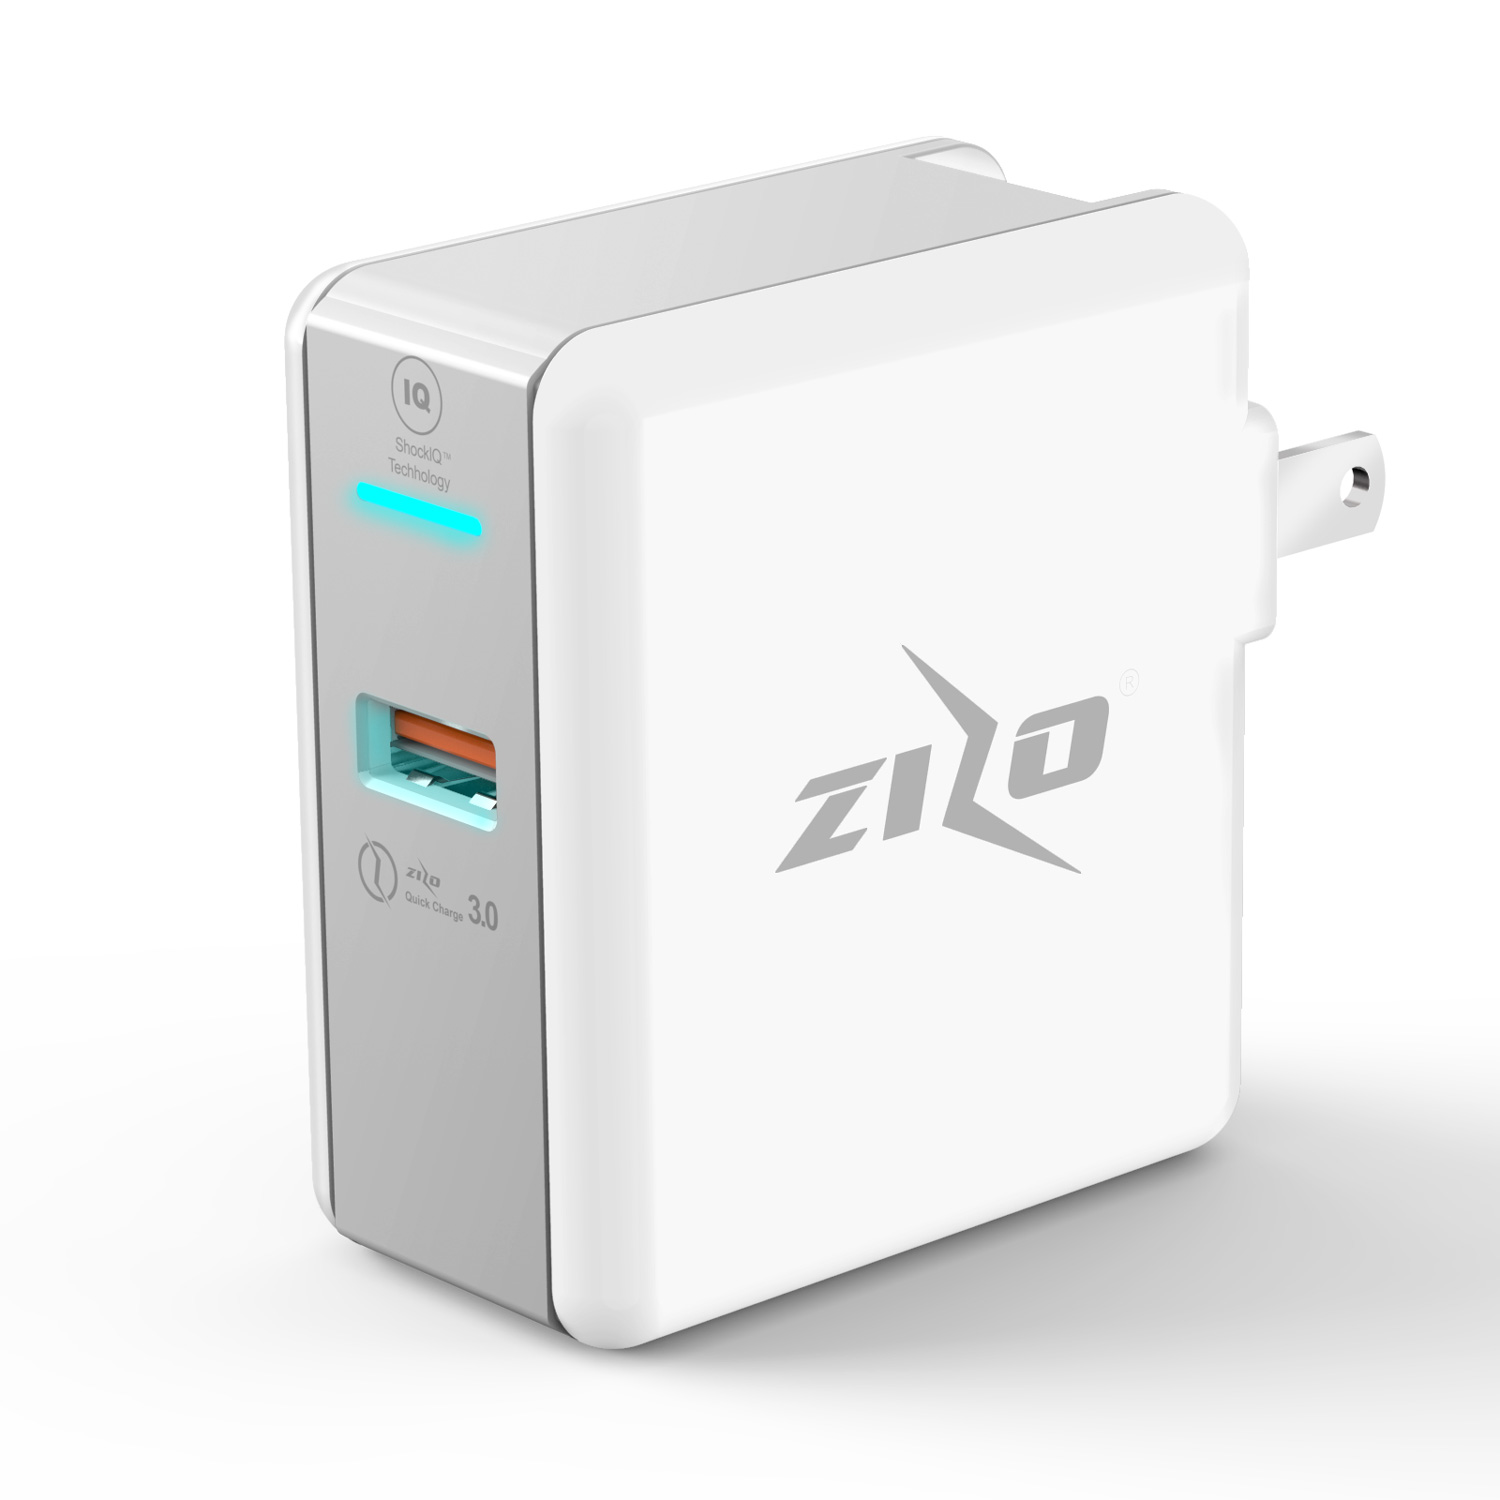 ZIZOCHARGE USB TRAVEL WALL CHARGER